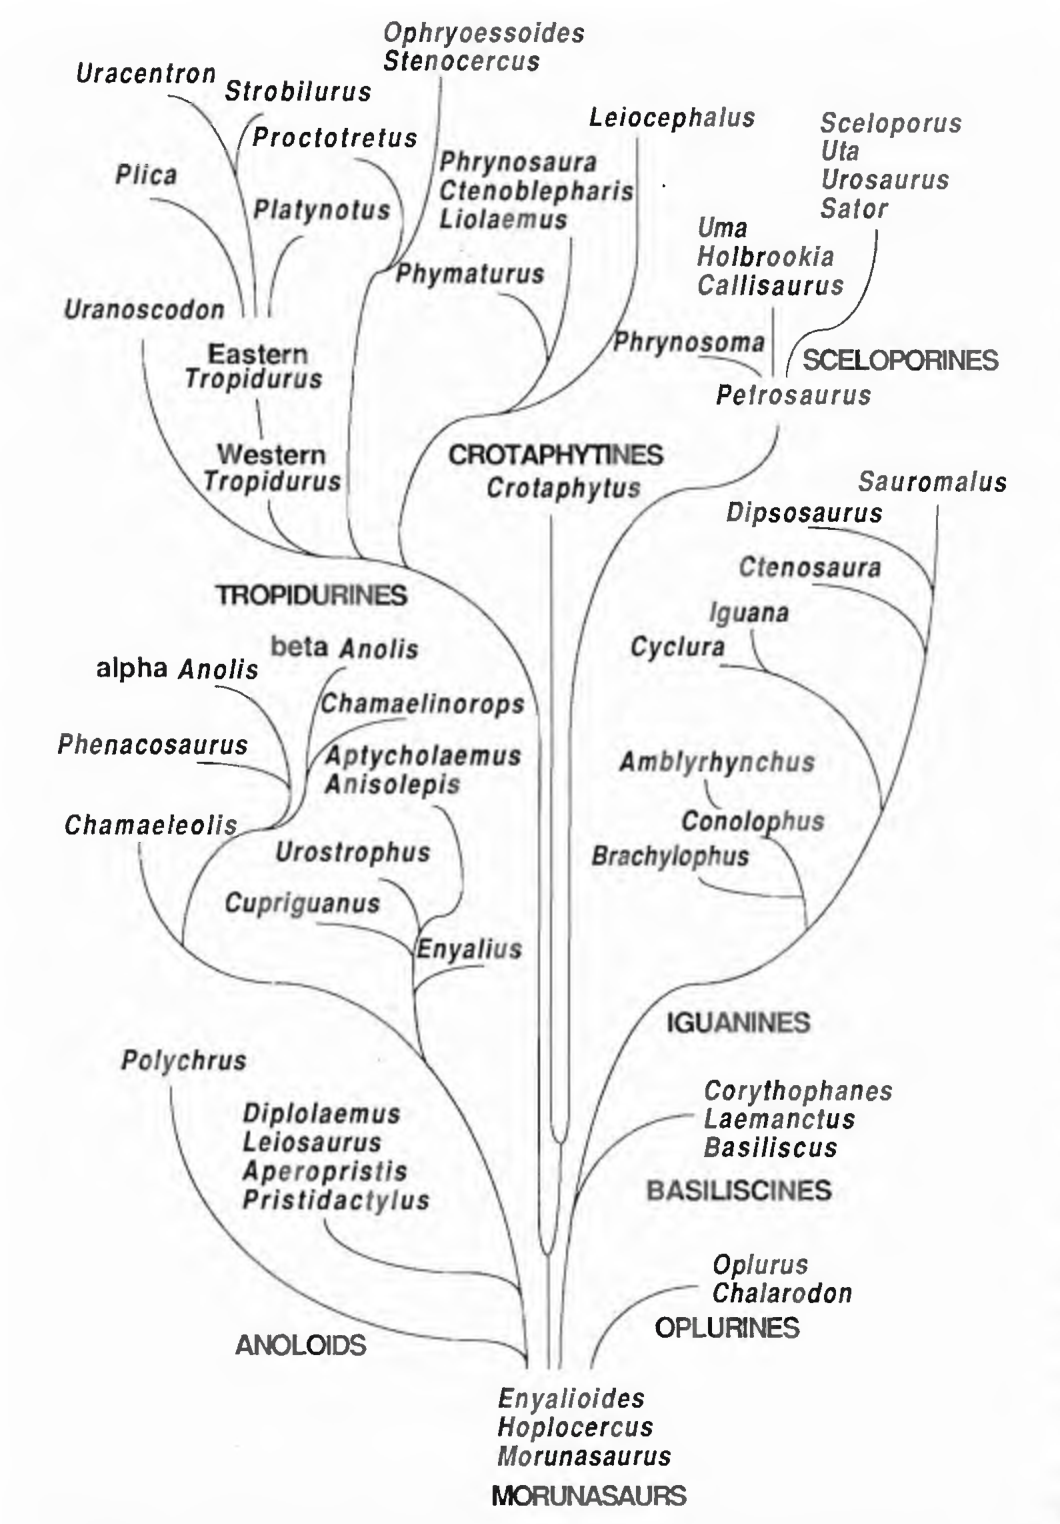 phylogenetics research papers Phylogeny research paper until recently, porifera had been considered a phylum but new evidence suggests that it is a clade a clade represents organisms that have a common ancestor and members of the clade may both be extant or extinct.